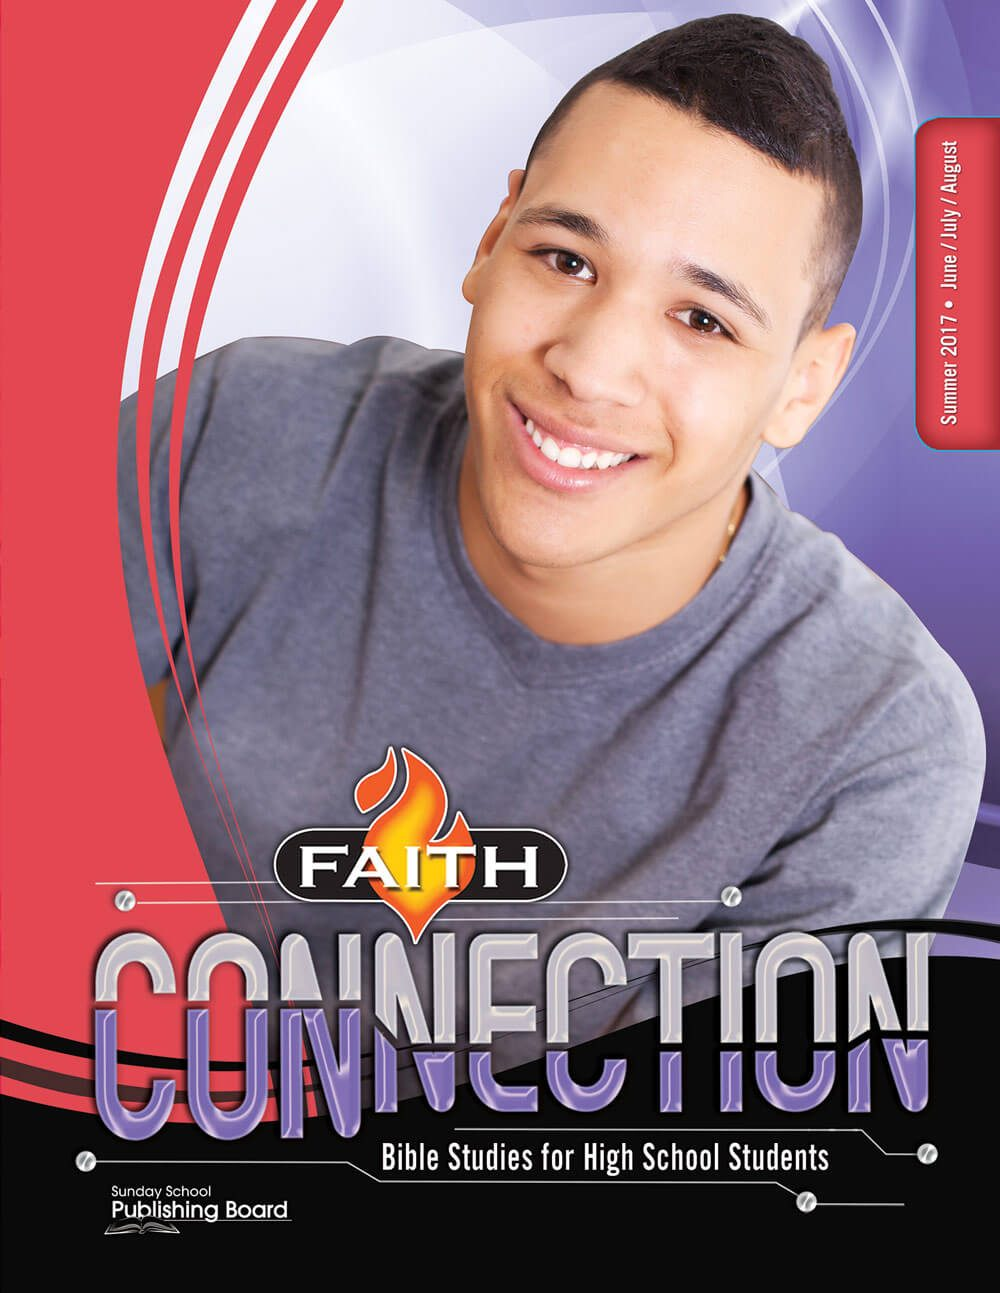 Faith Connection Bible Studies for High School Students (Summer 2017) – Digital Edition